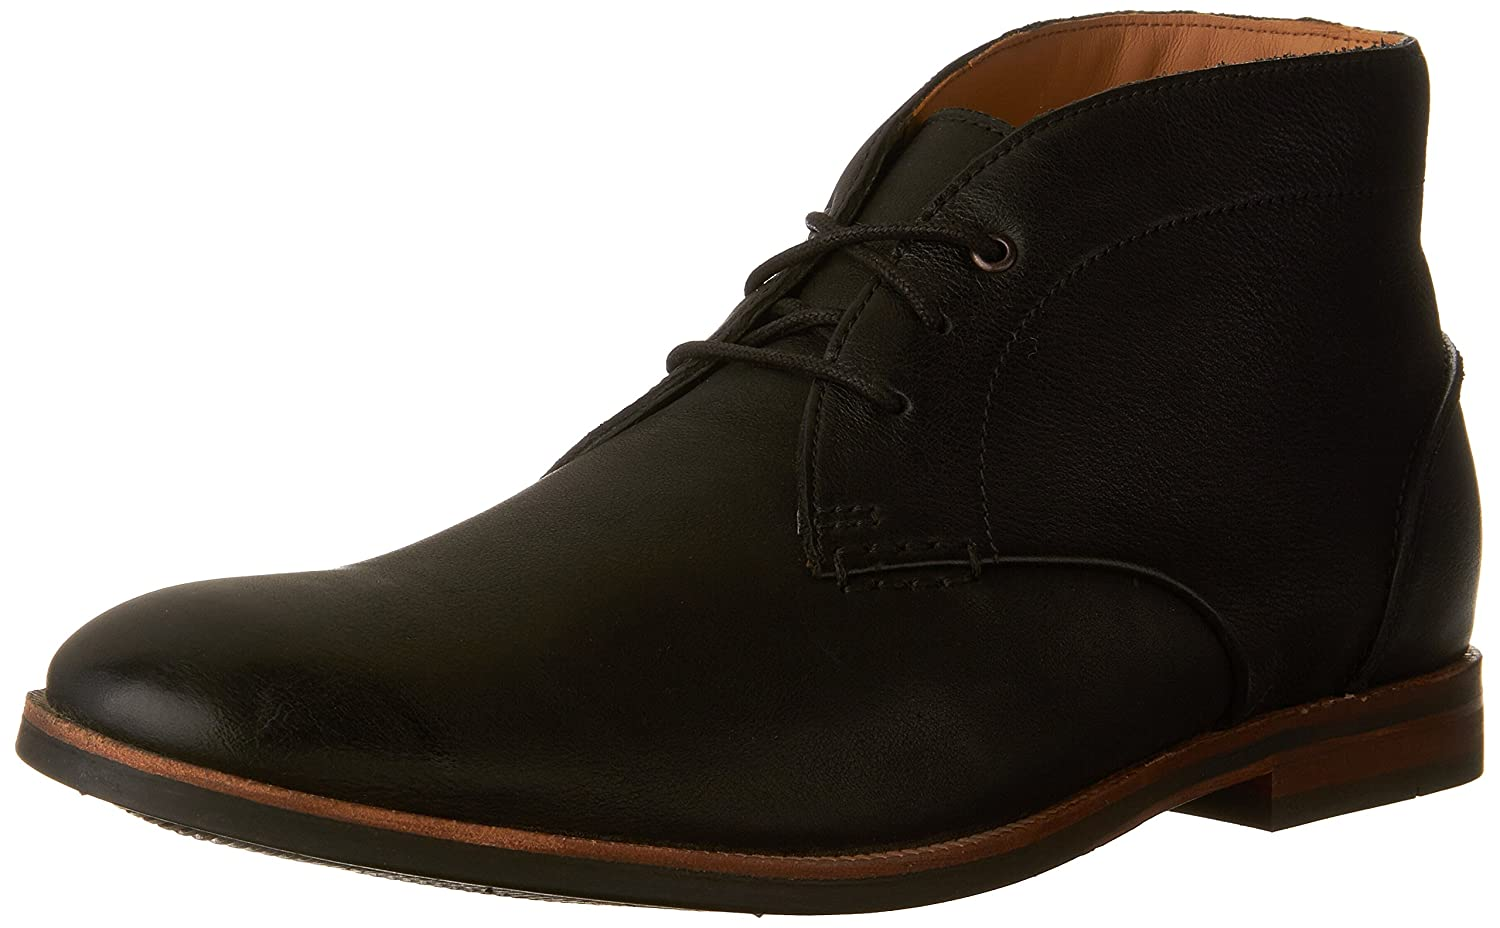 Clarks Men's Broyd Mid Ankle Boot